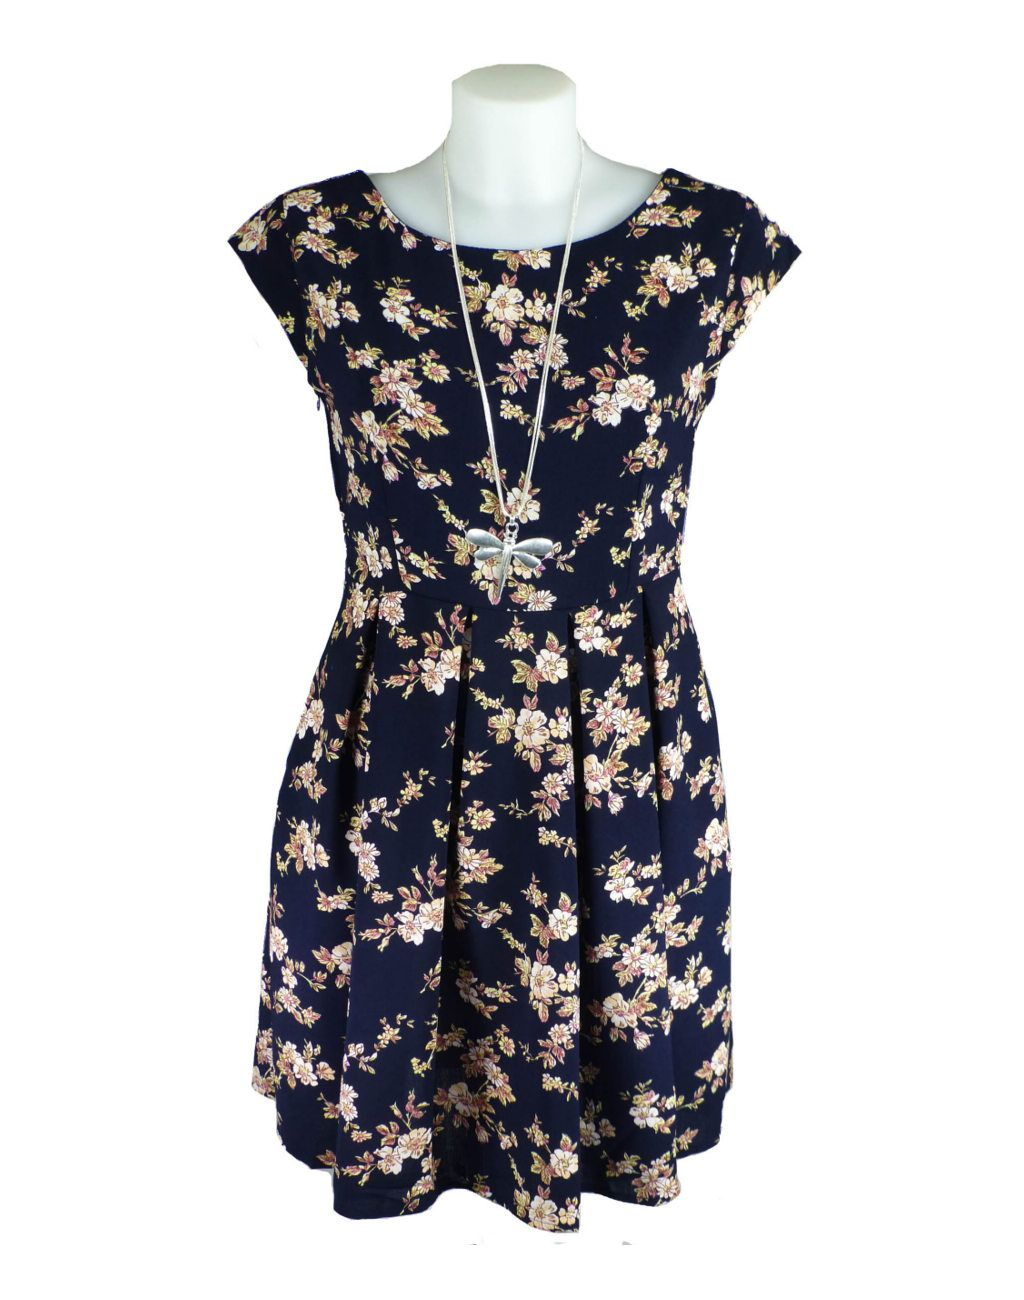 Pretty everyday outfit for summer or holidays- Shikha London Navy Floral Dress